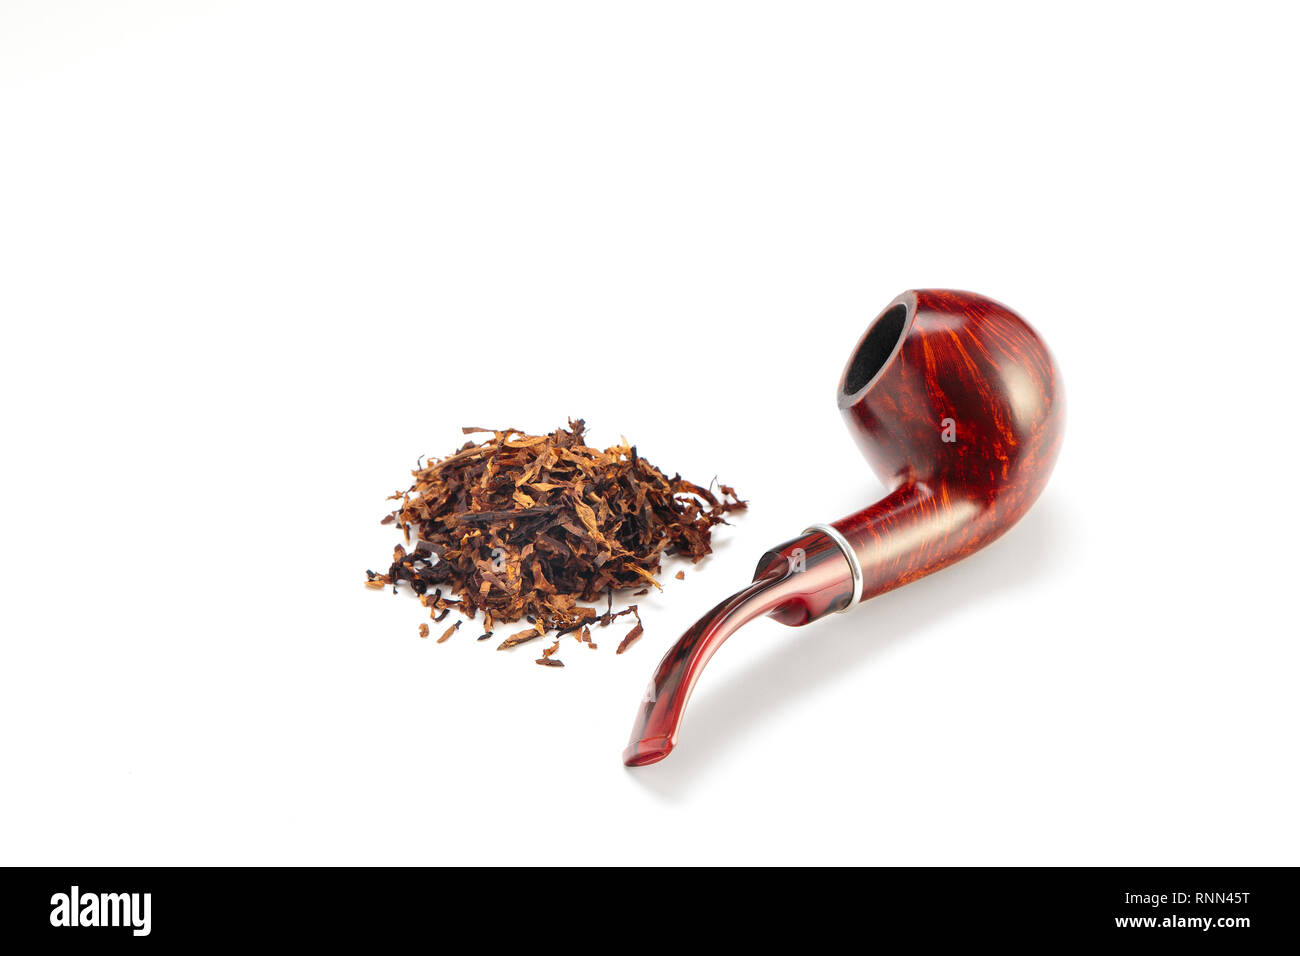 Smoking pipe with quality tobacco leaves on a white background - Stock Image